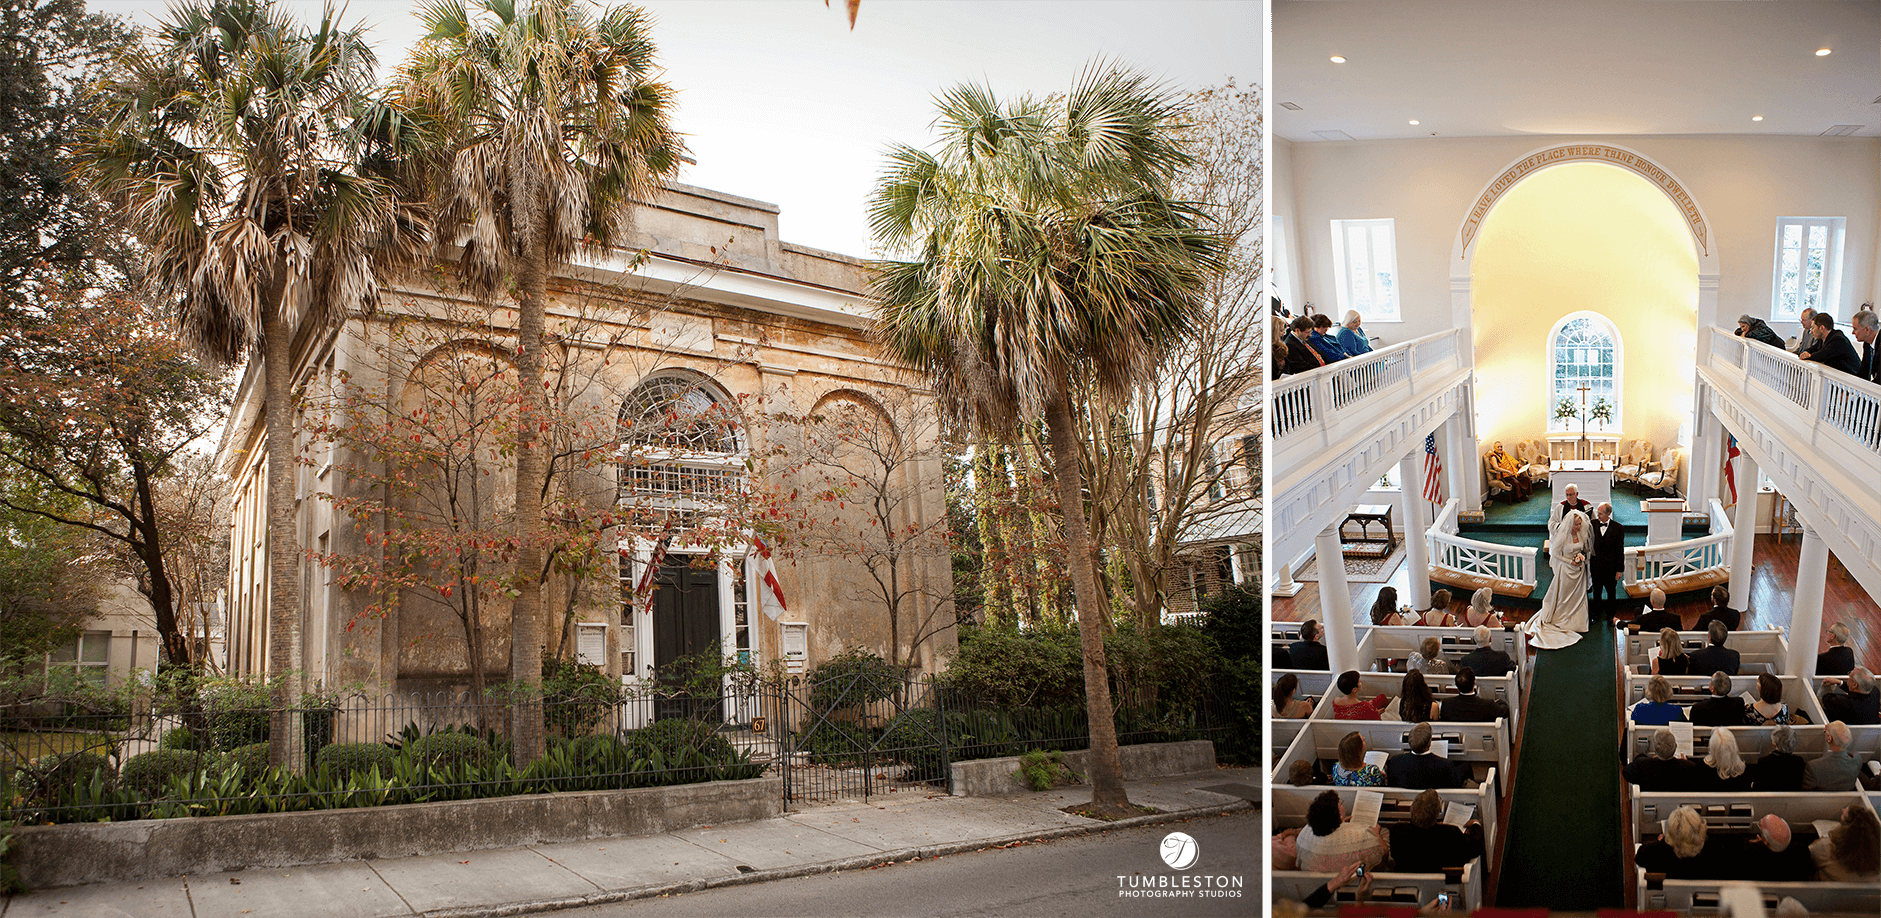 Our favorite wedding chapels best wedding venues in charleston sc st stephens chapel charleston junglespirit Image collections